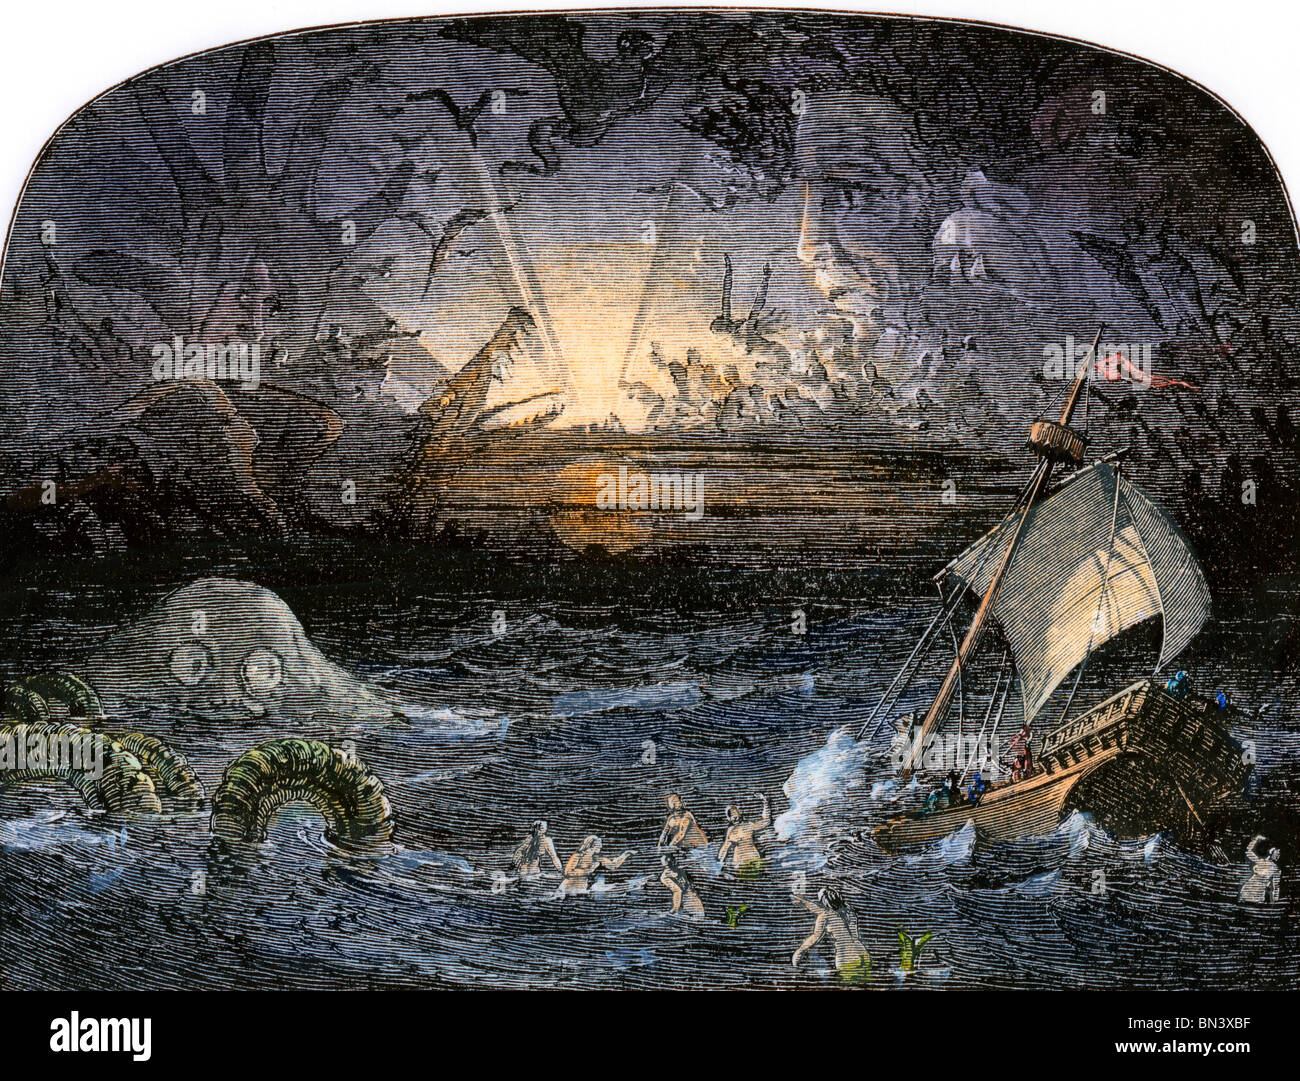 Terrors in the Sea of Darkness. Hand-colored woodcut - Stock Image